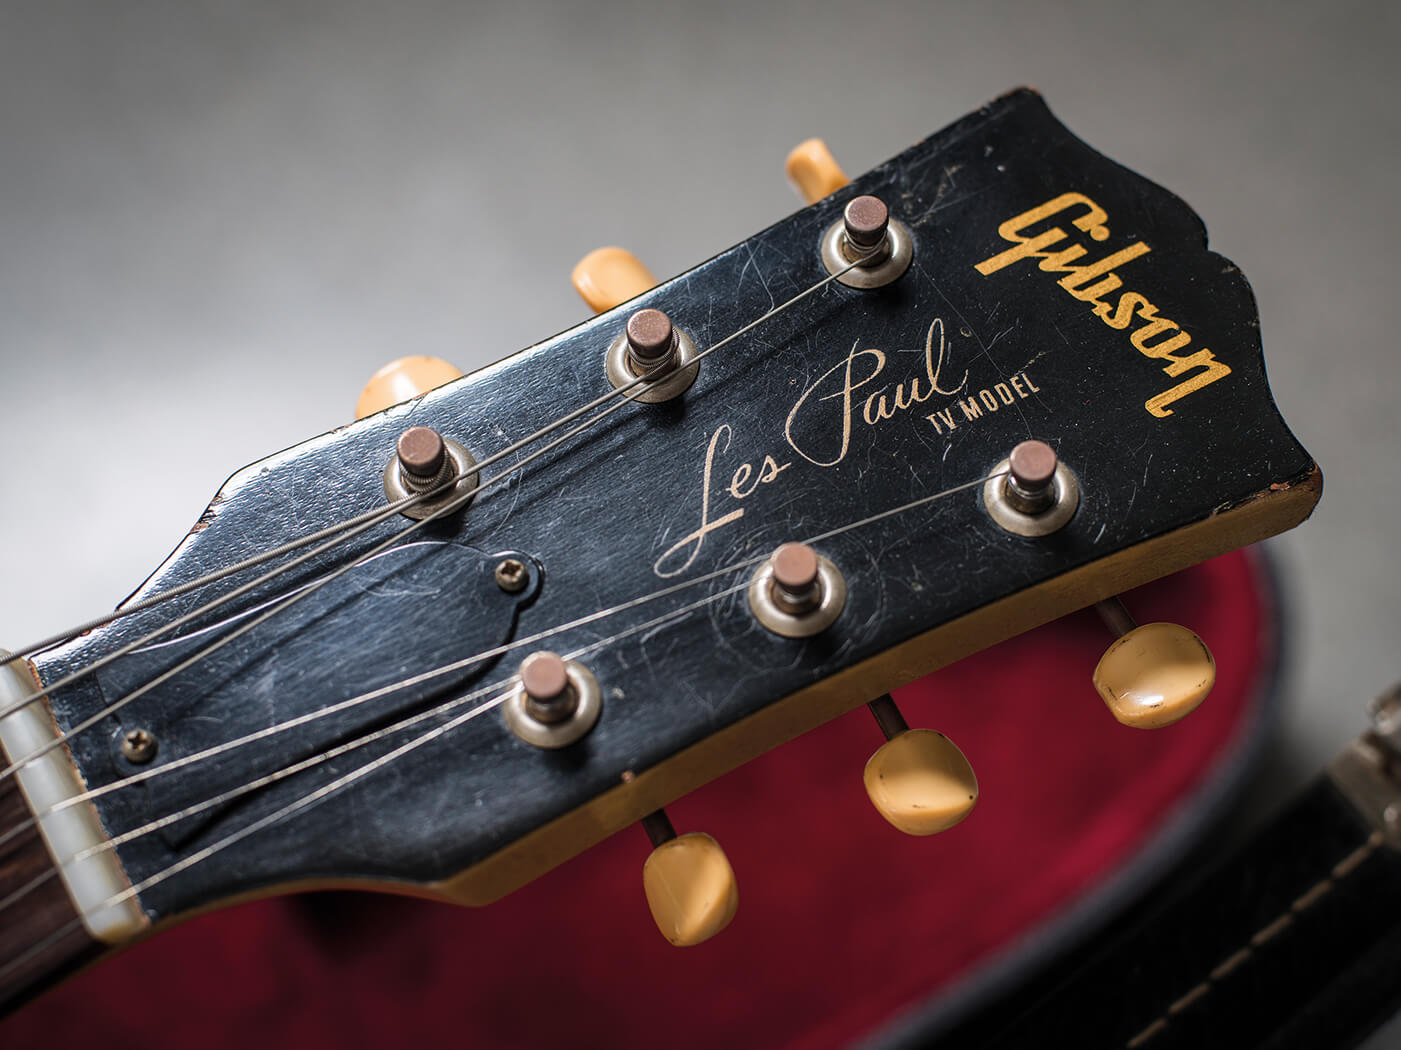 hight resolution of gibson les paul tv model vintage